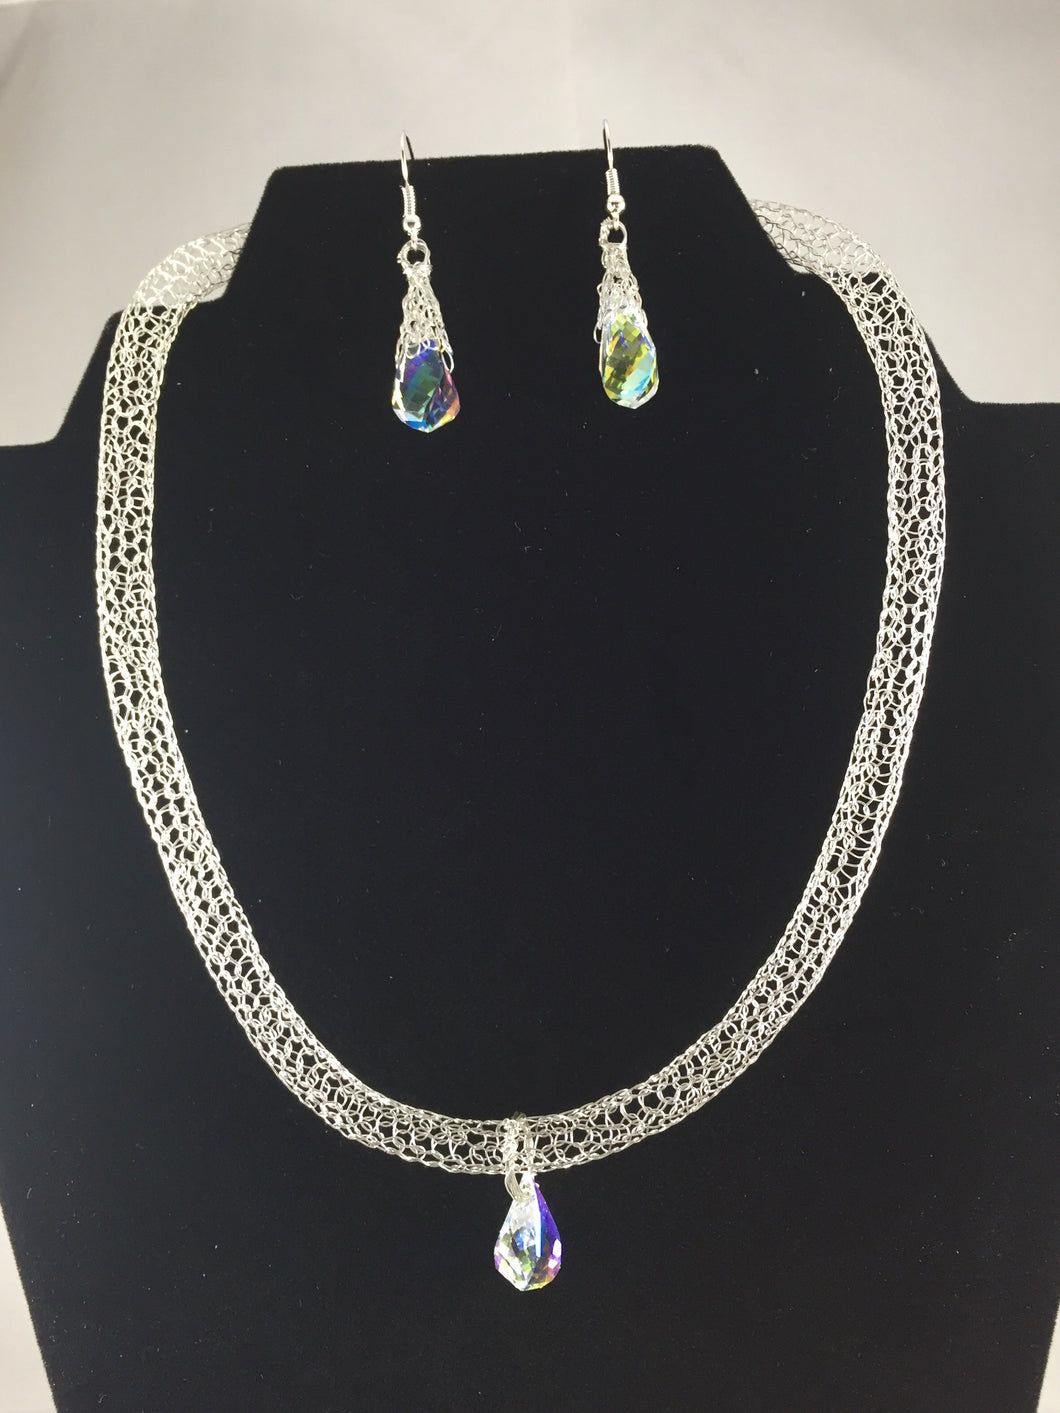 Swarovski silver earring and necklace set